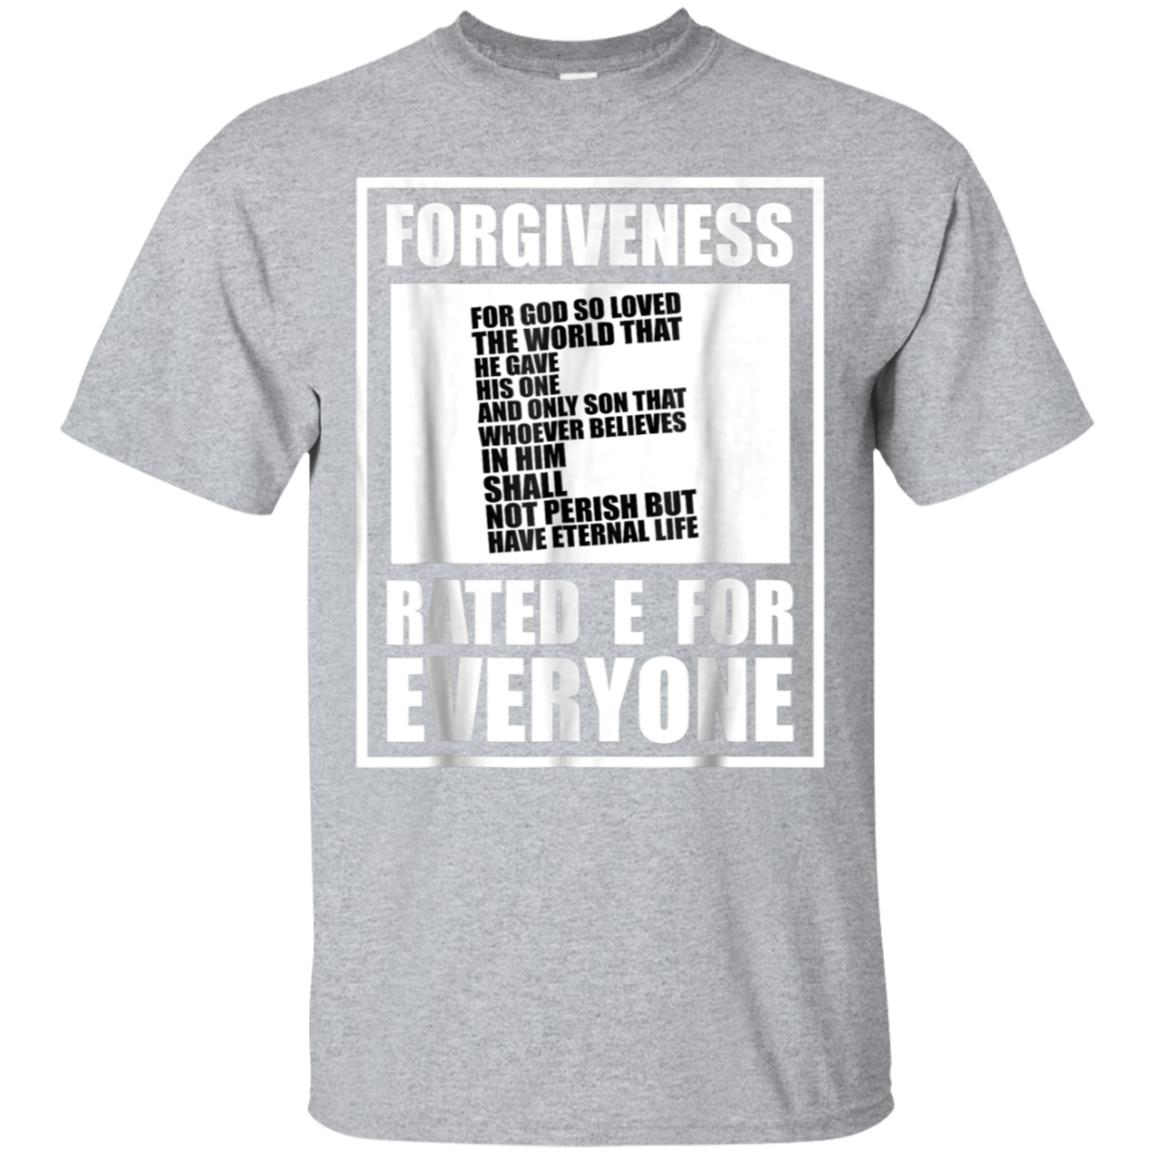 Christian Religious TShirt Forgiveness Rated E For Everyone 99promocode